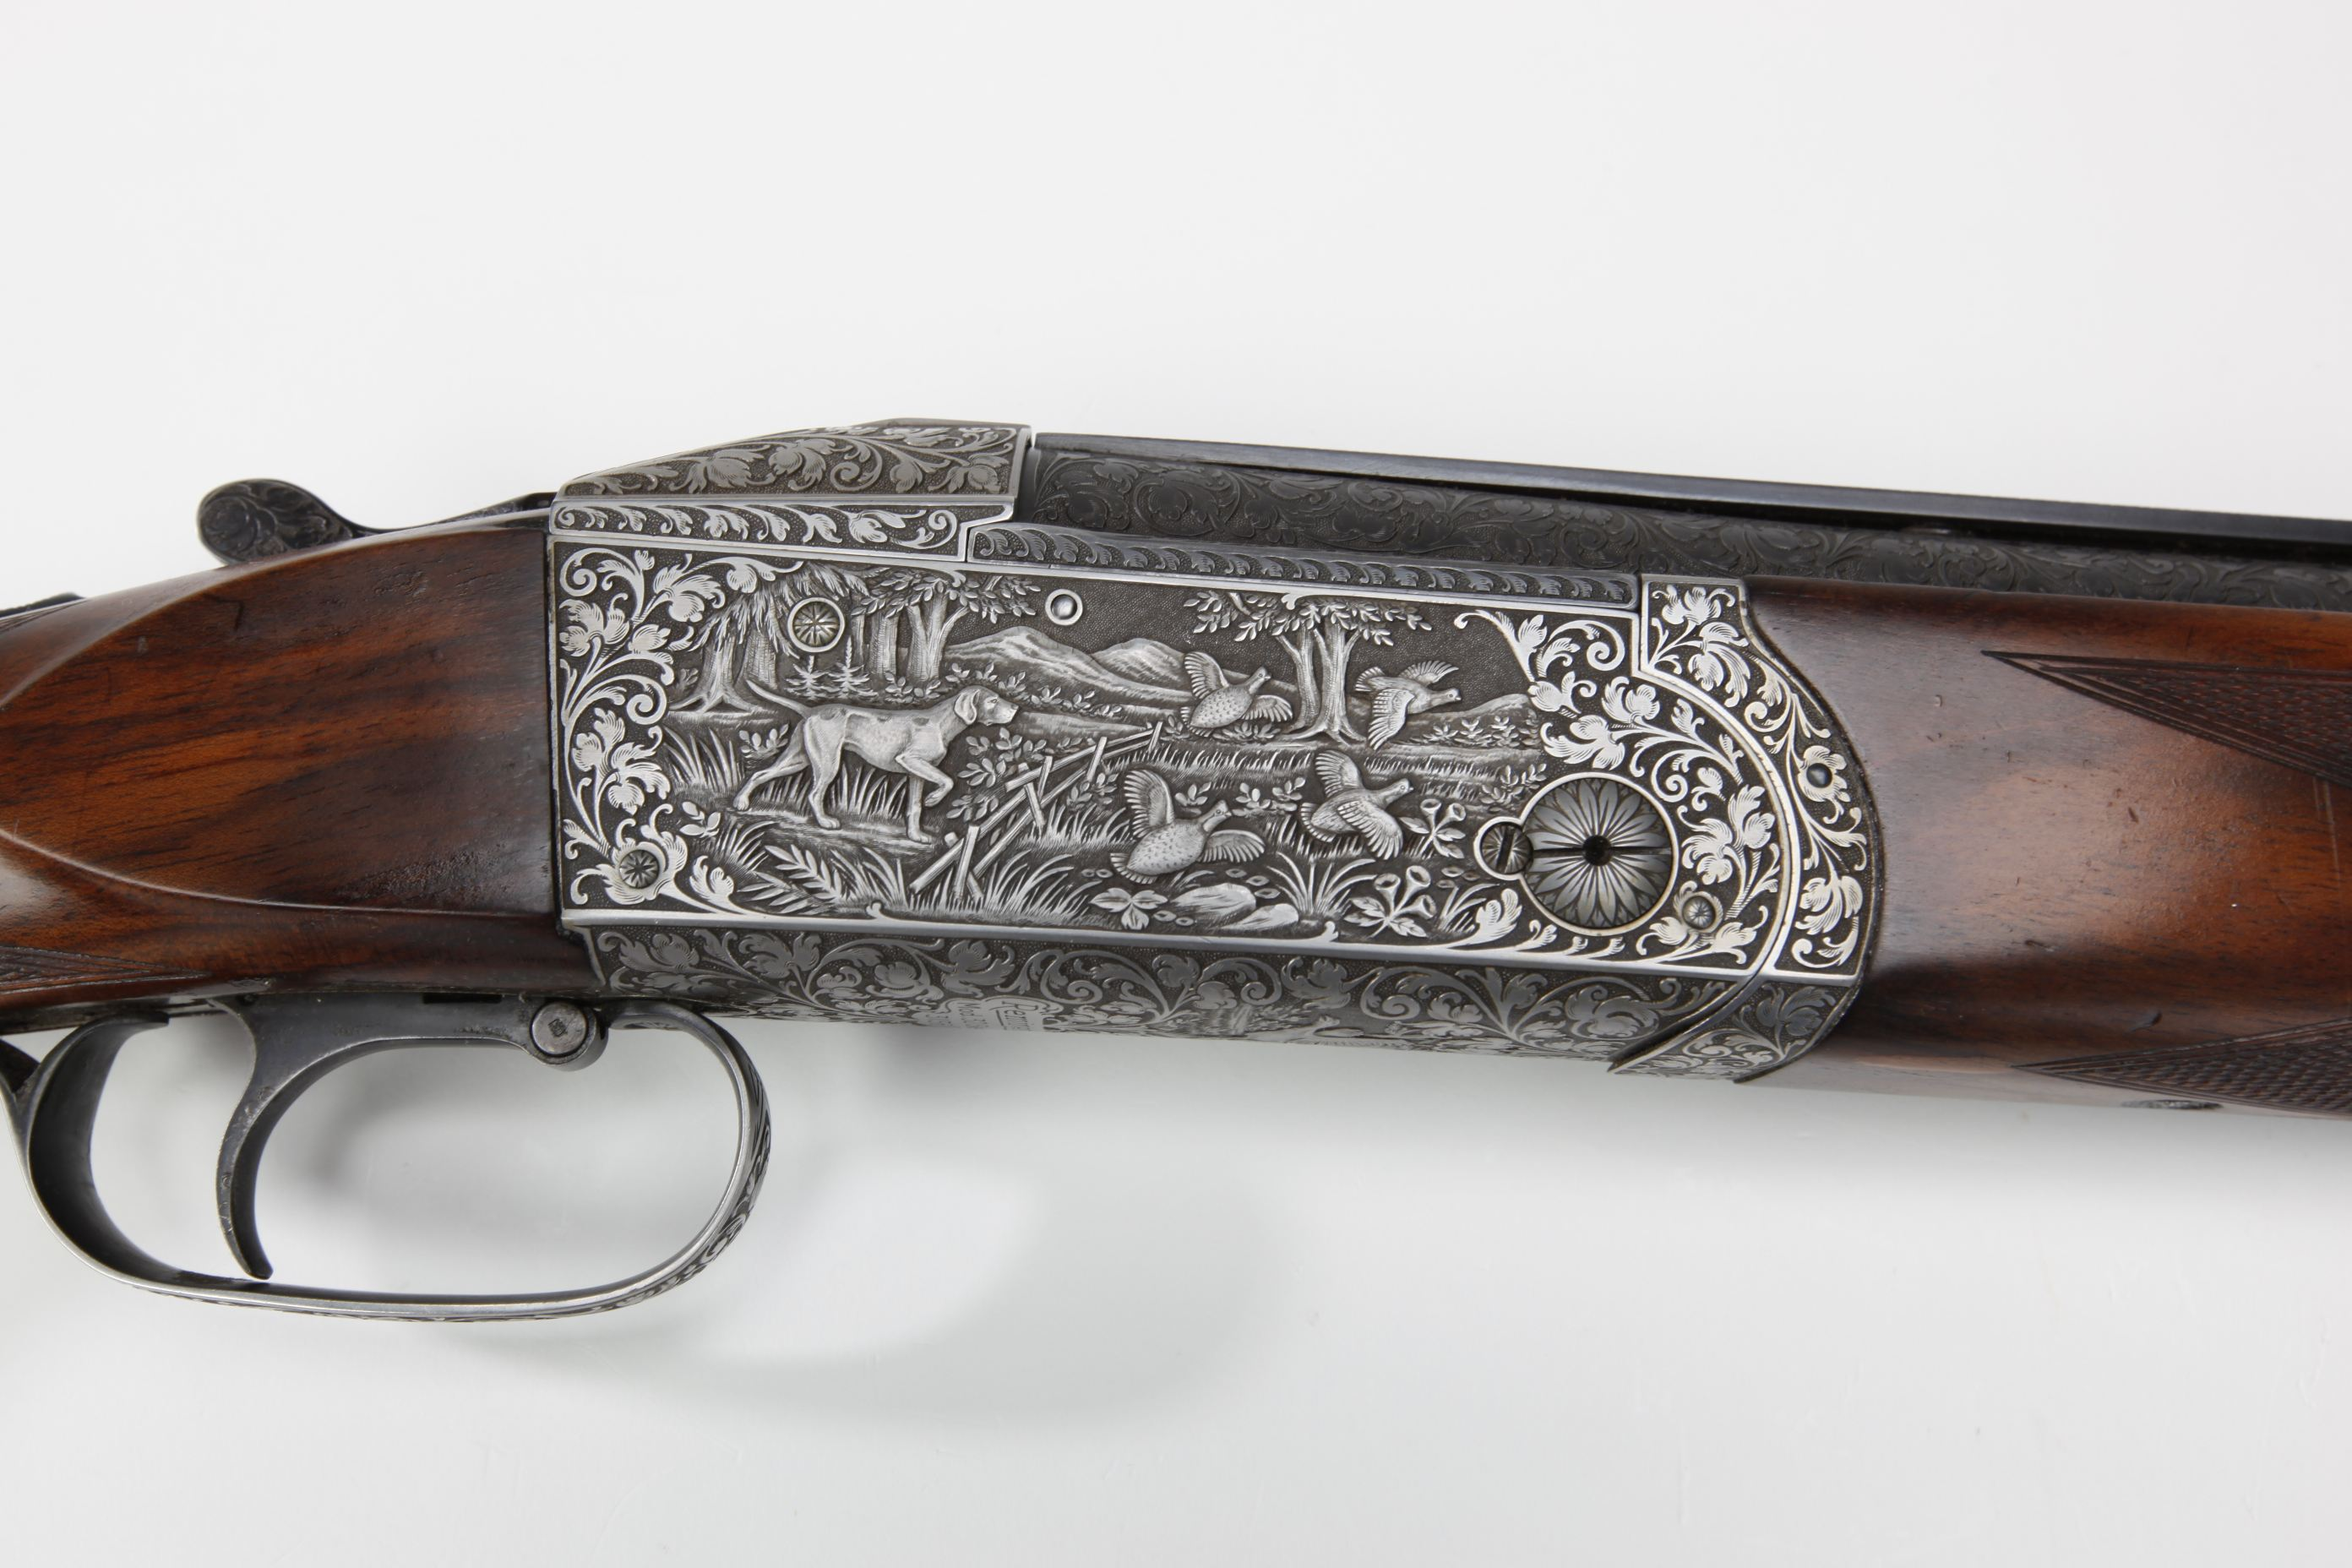 Remington (Illion, NY) Model 32 Over-Under Shotgun